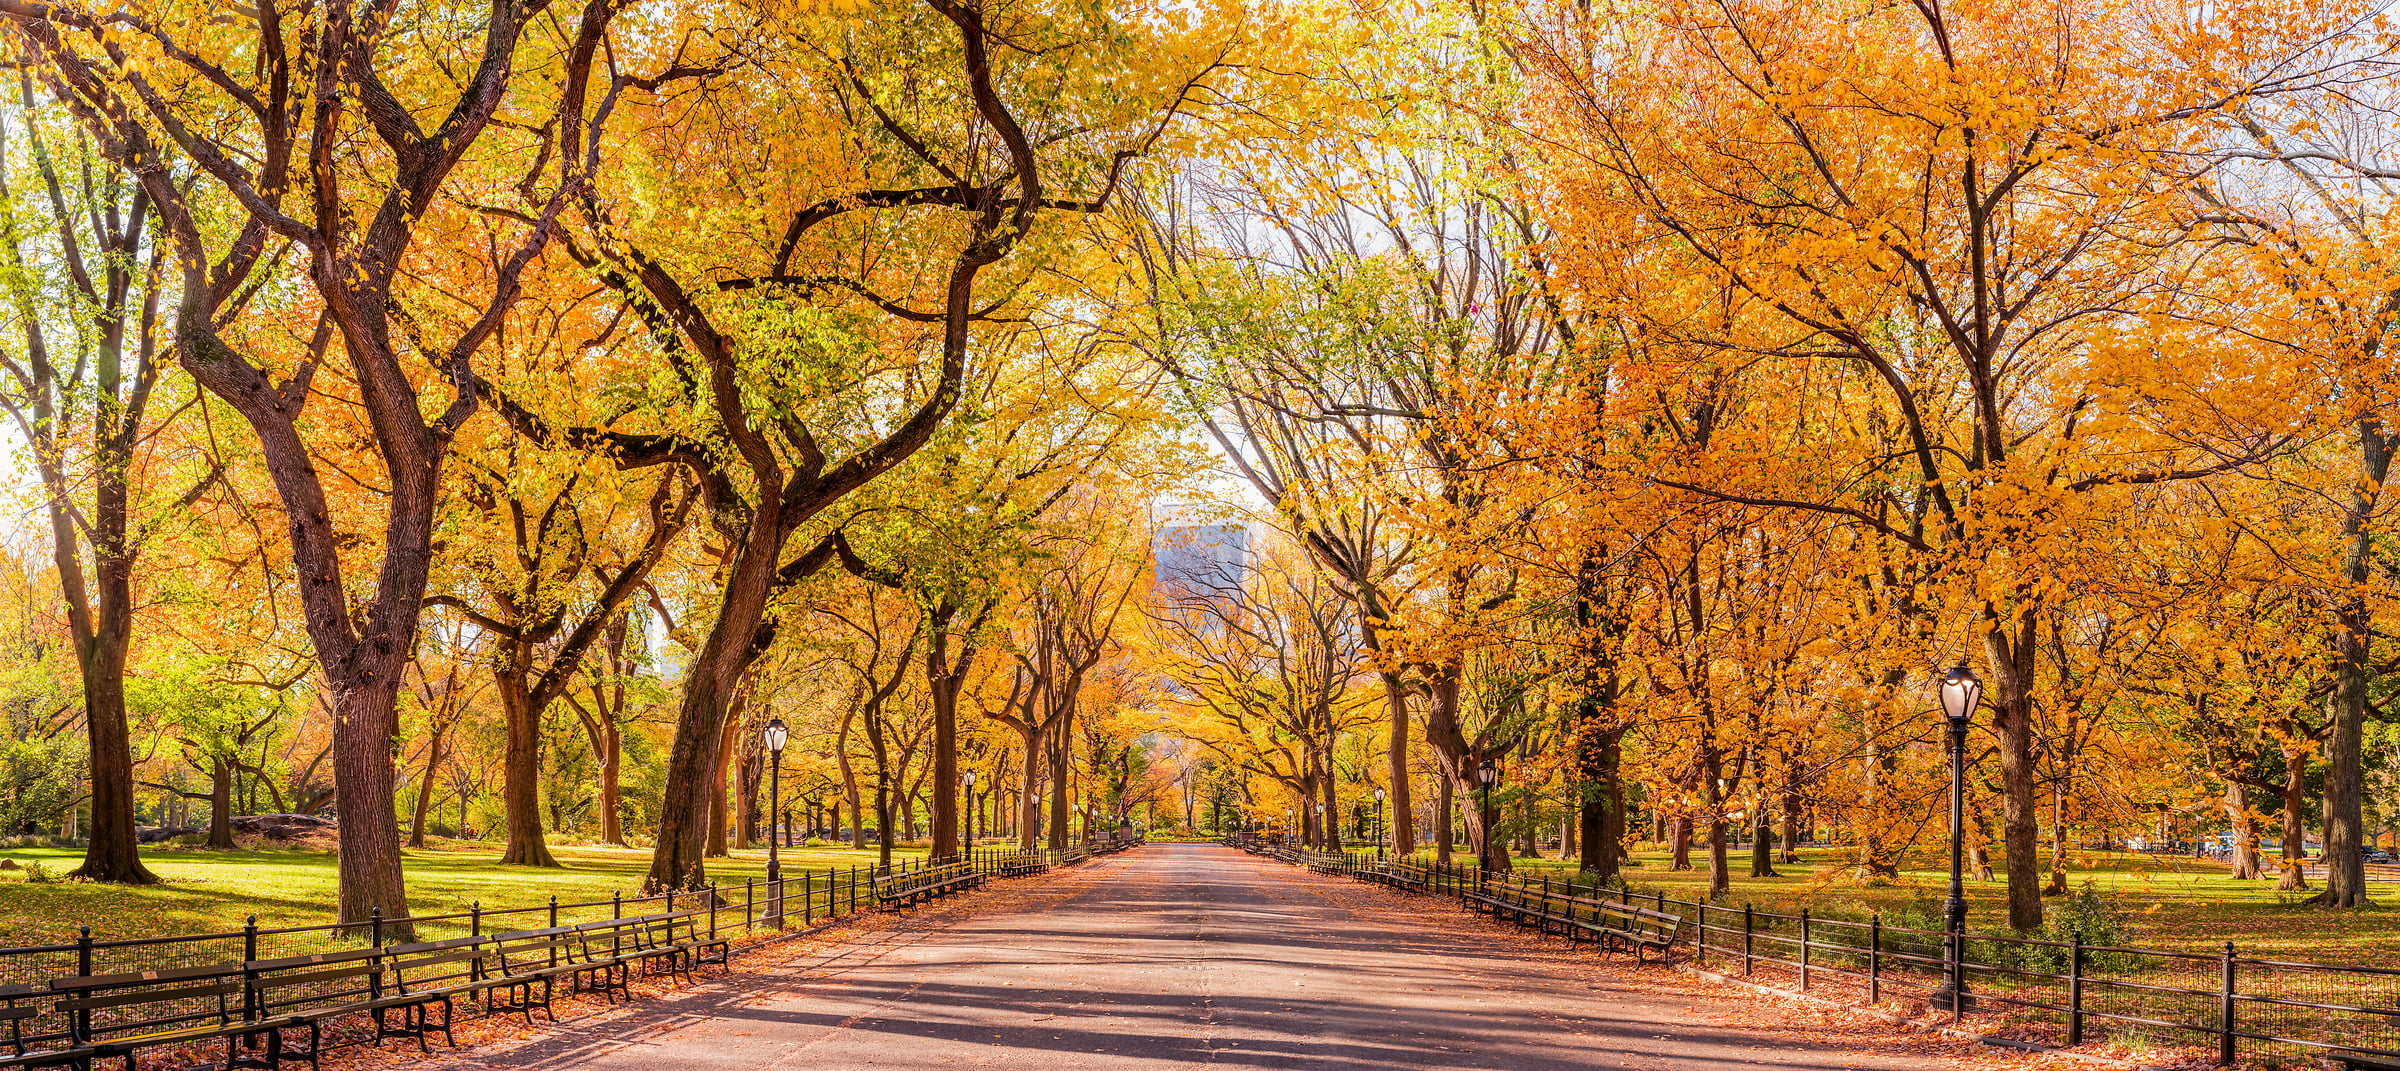 1,754 megapixels! A very high definition VAST photo of autumn trees on the Mall in Central Park in New York City at sunrise; created by Dan Piech